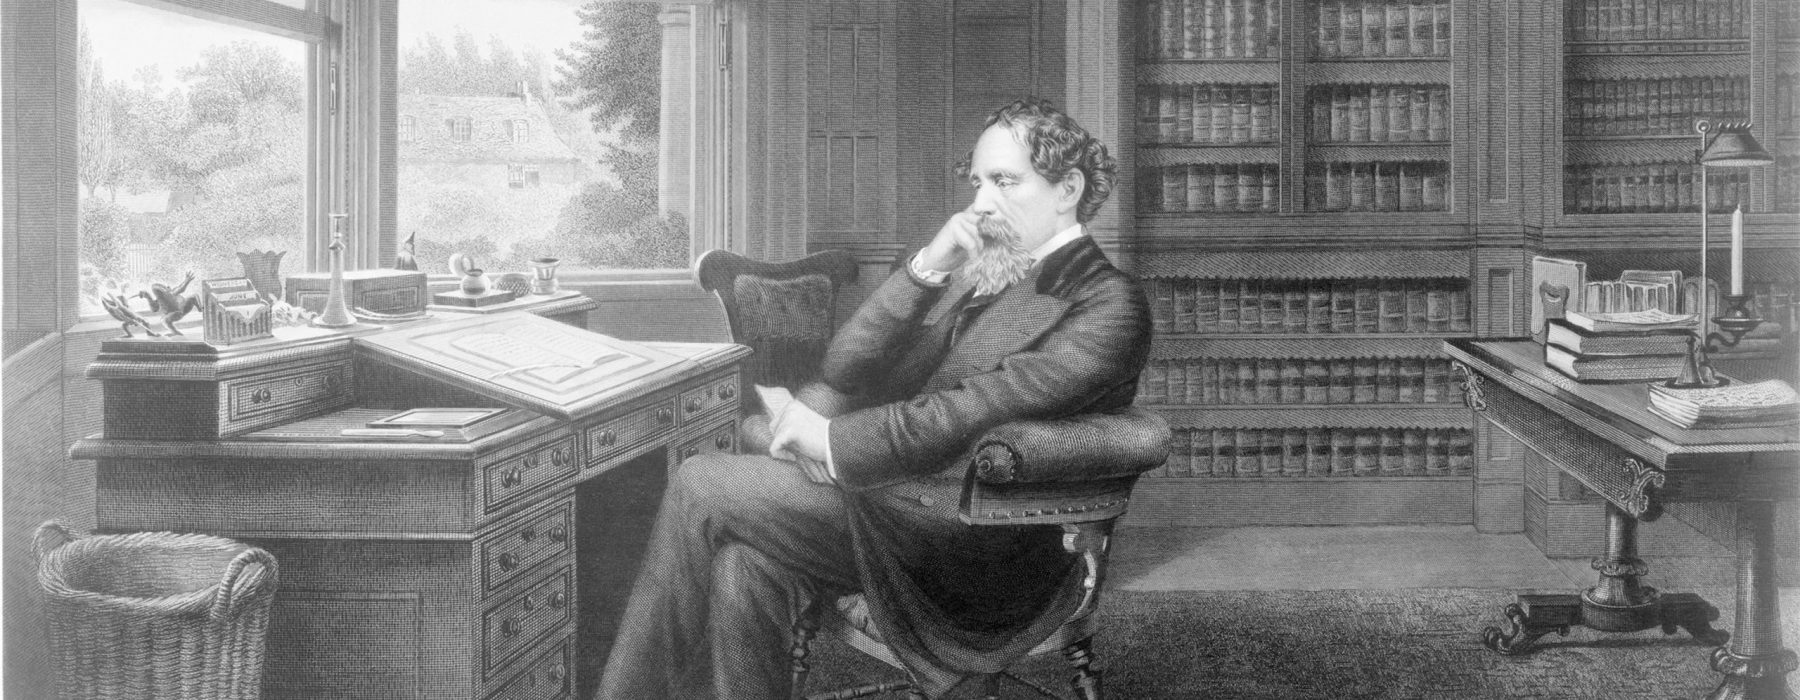 Charles Dickens (1812-1870) in his study at Gad's Hill Place